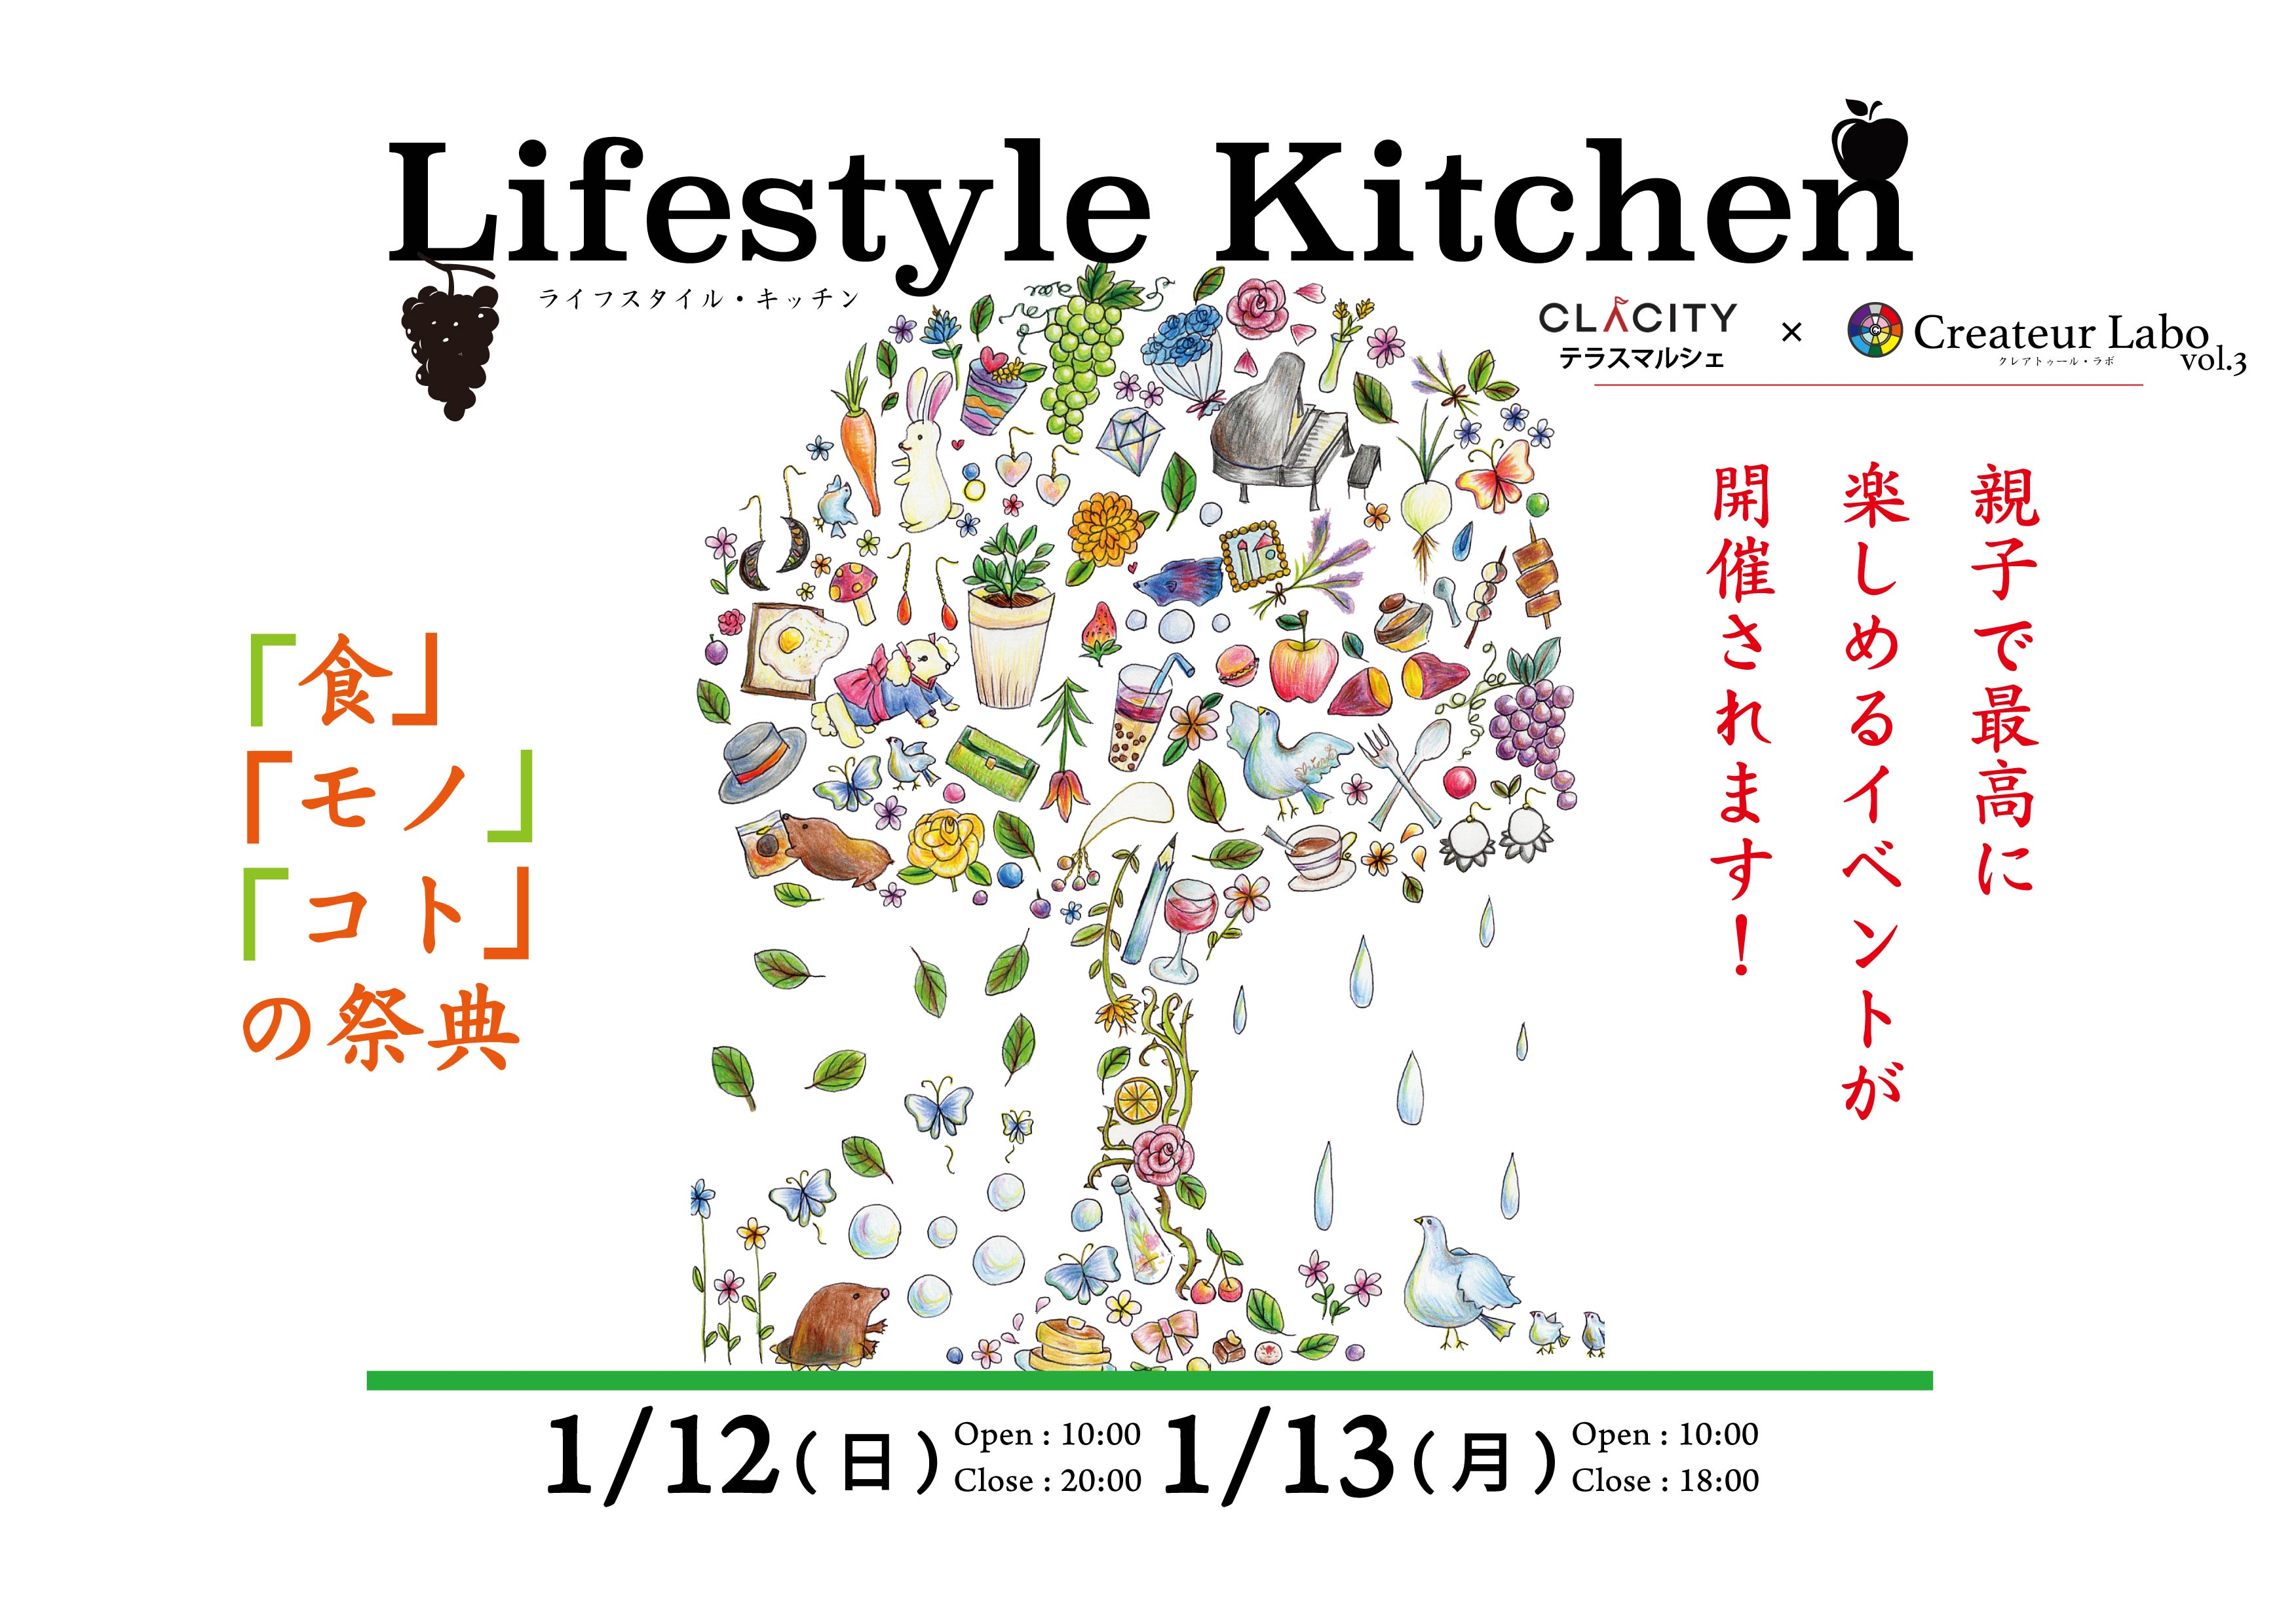 CLACITYテラスマルシェ × Createur Labo vol.3 『Lifestyle kitchen』開催決定!